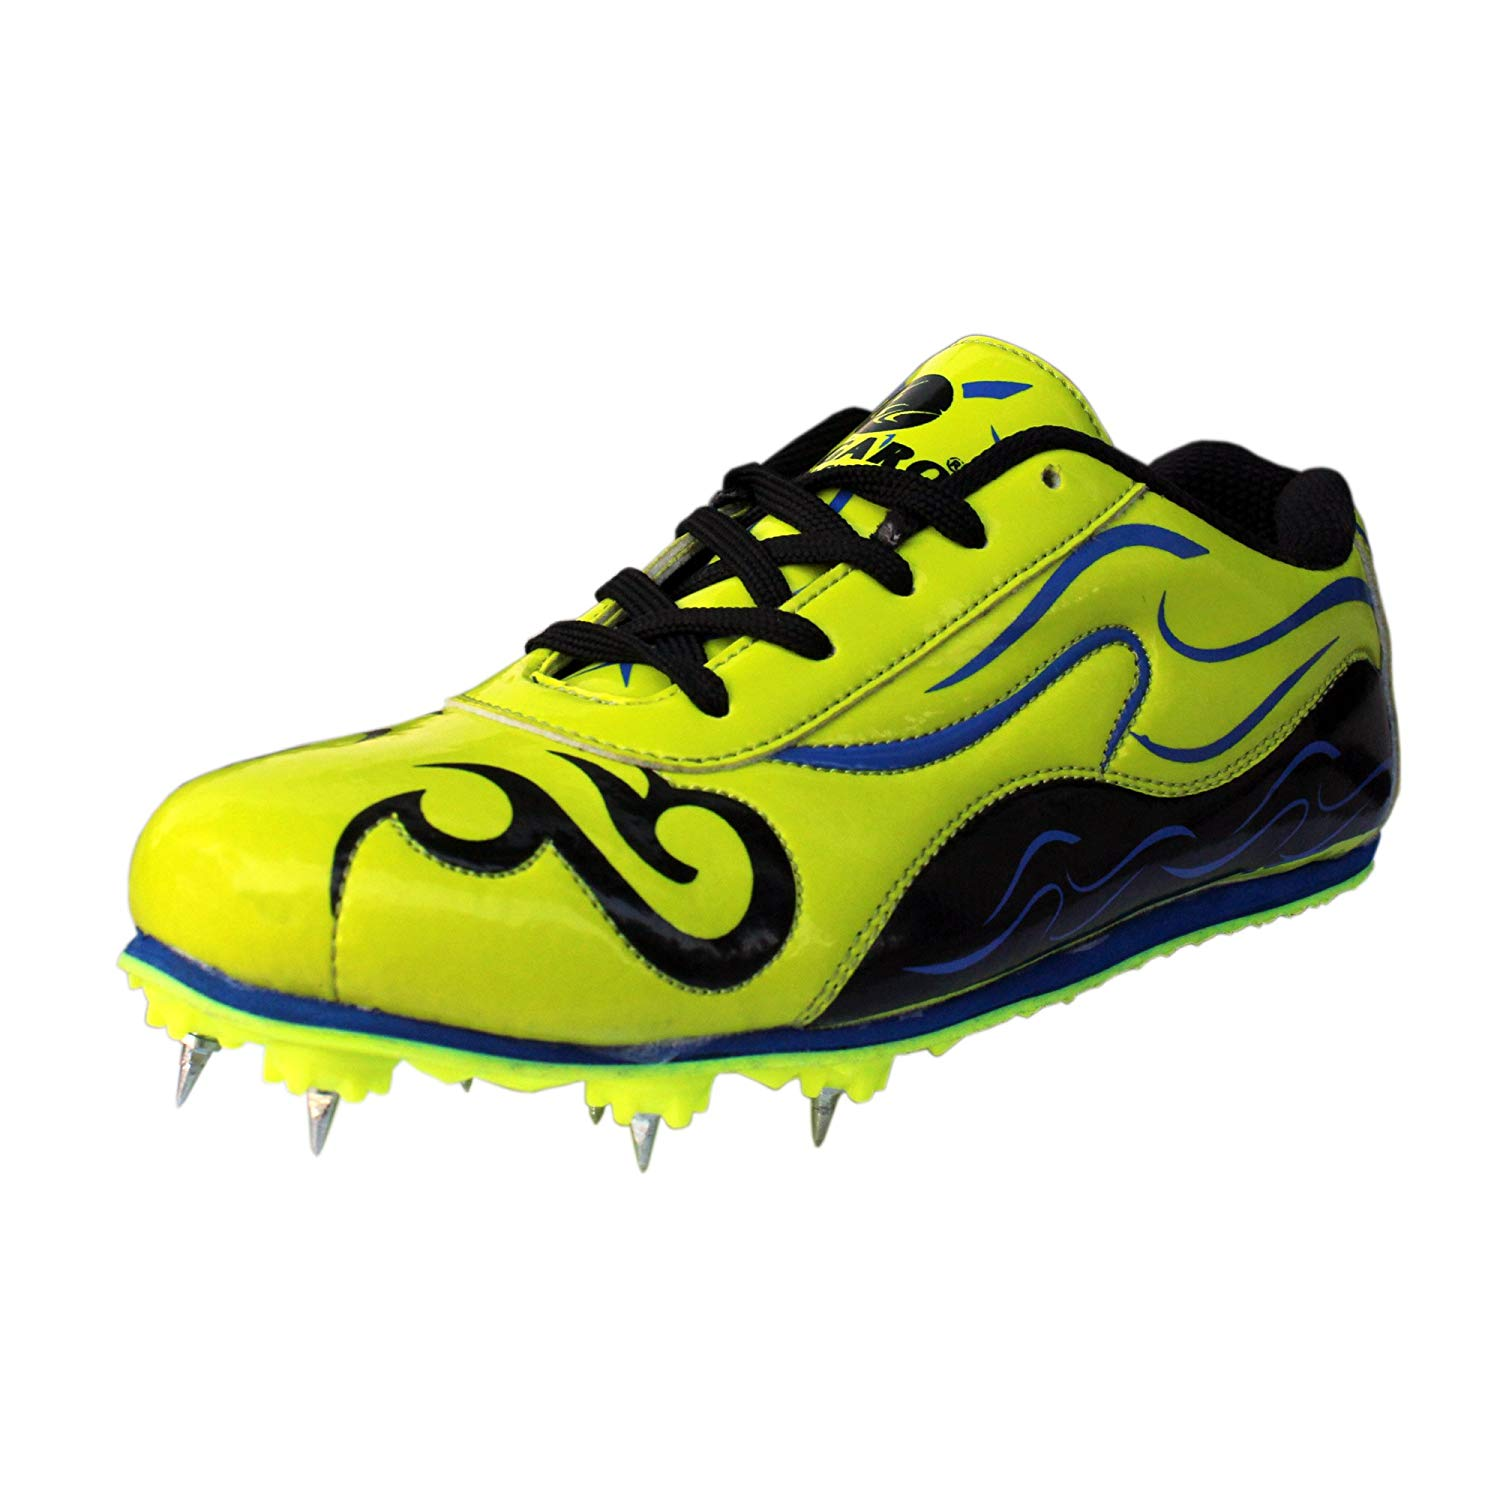 Flying track shoe clipart 1500 x 1500 clip stock ZIGARO Green Running Spikes Shoe clip stock